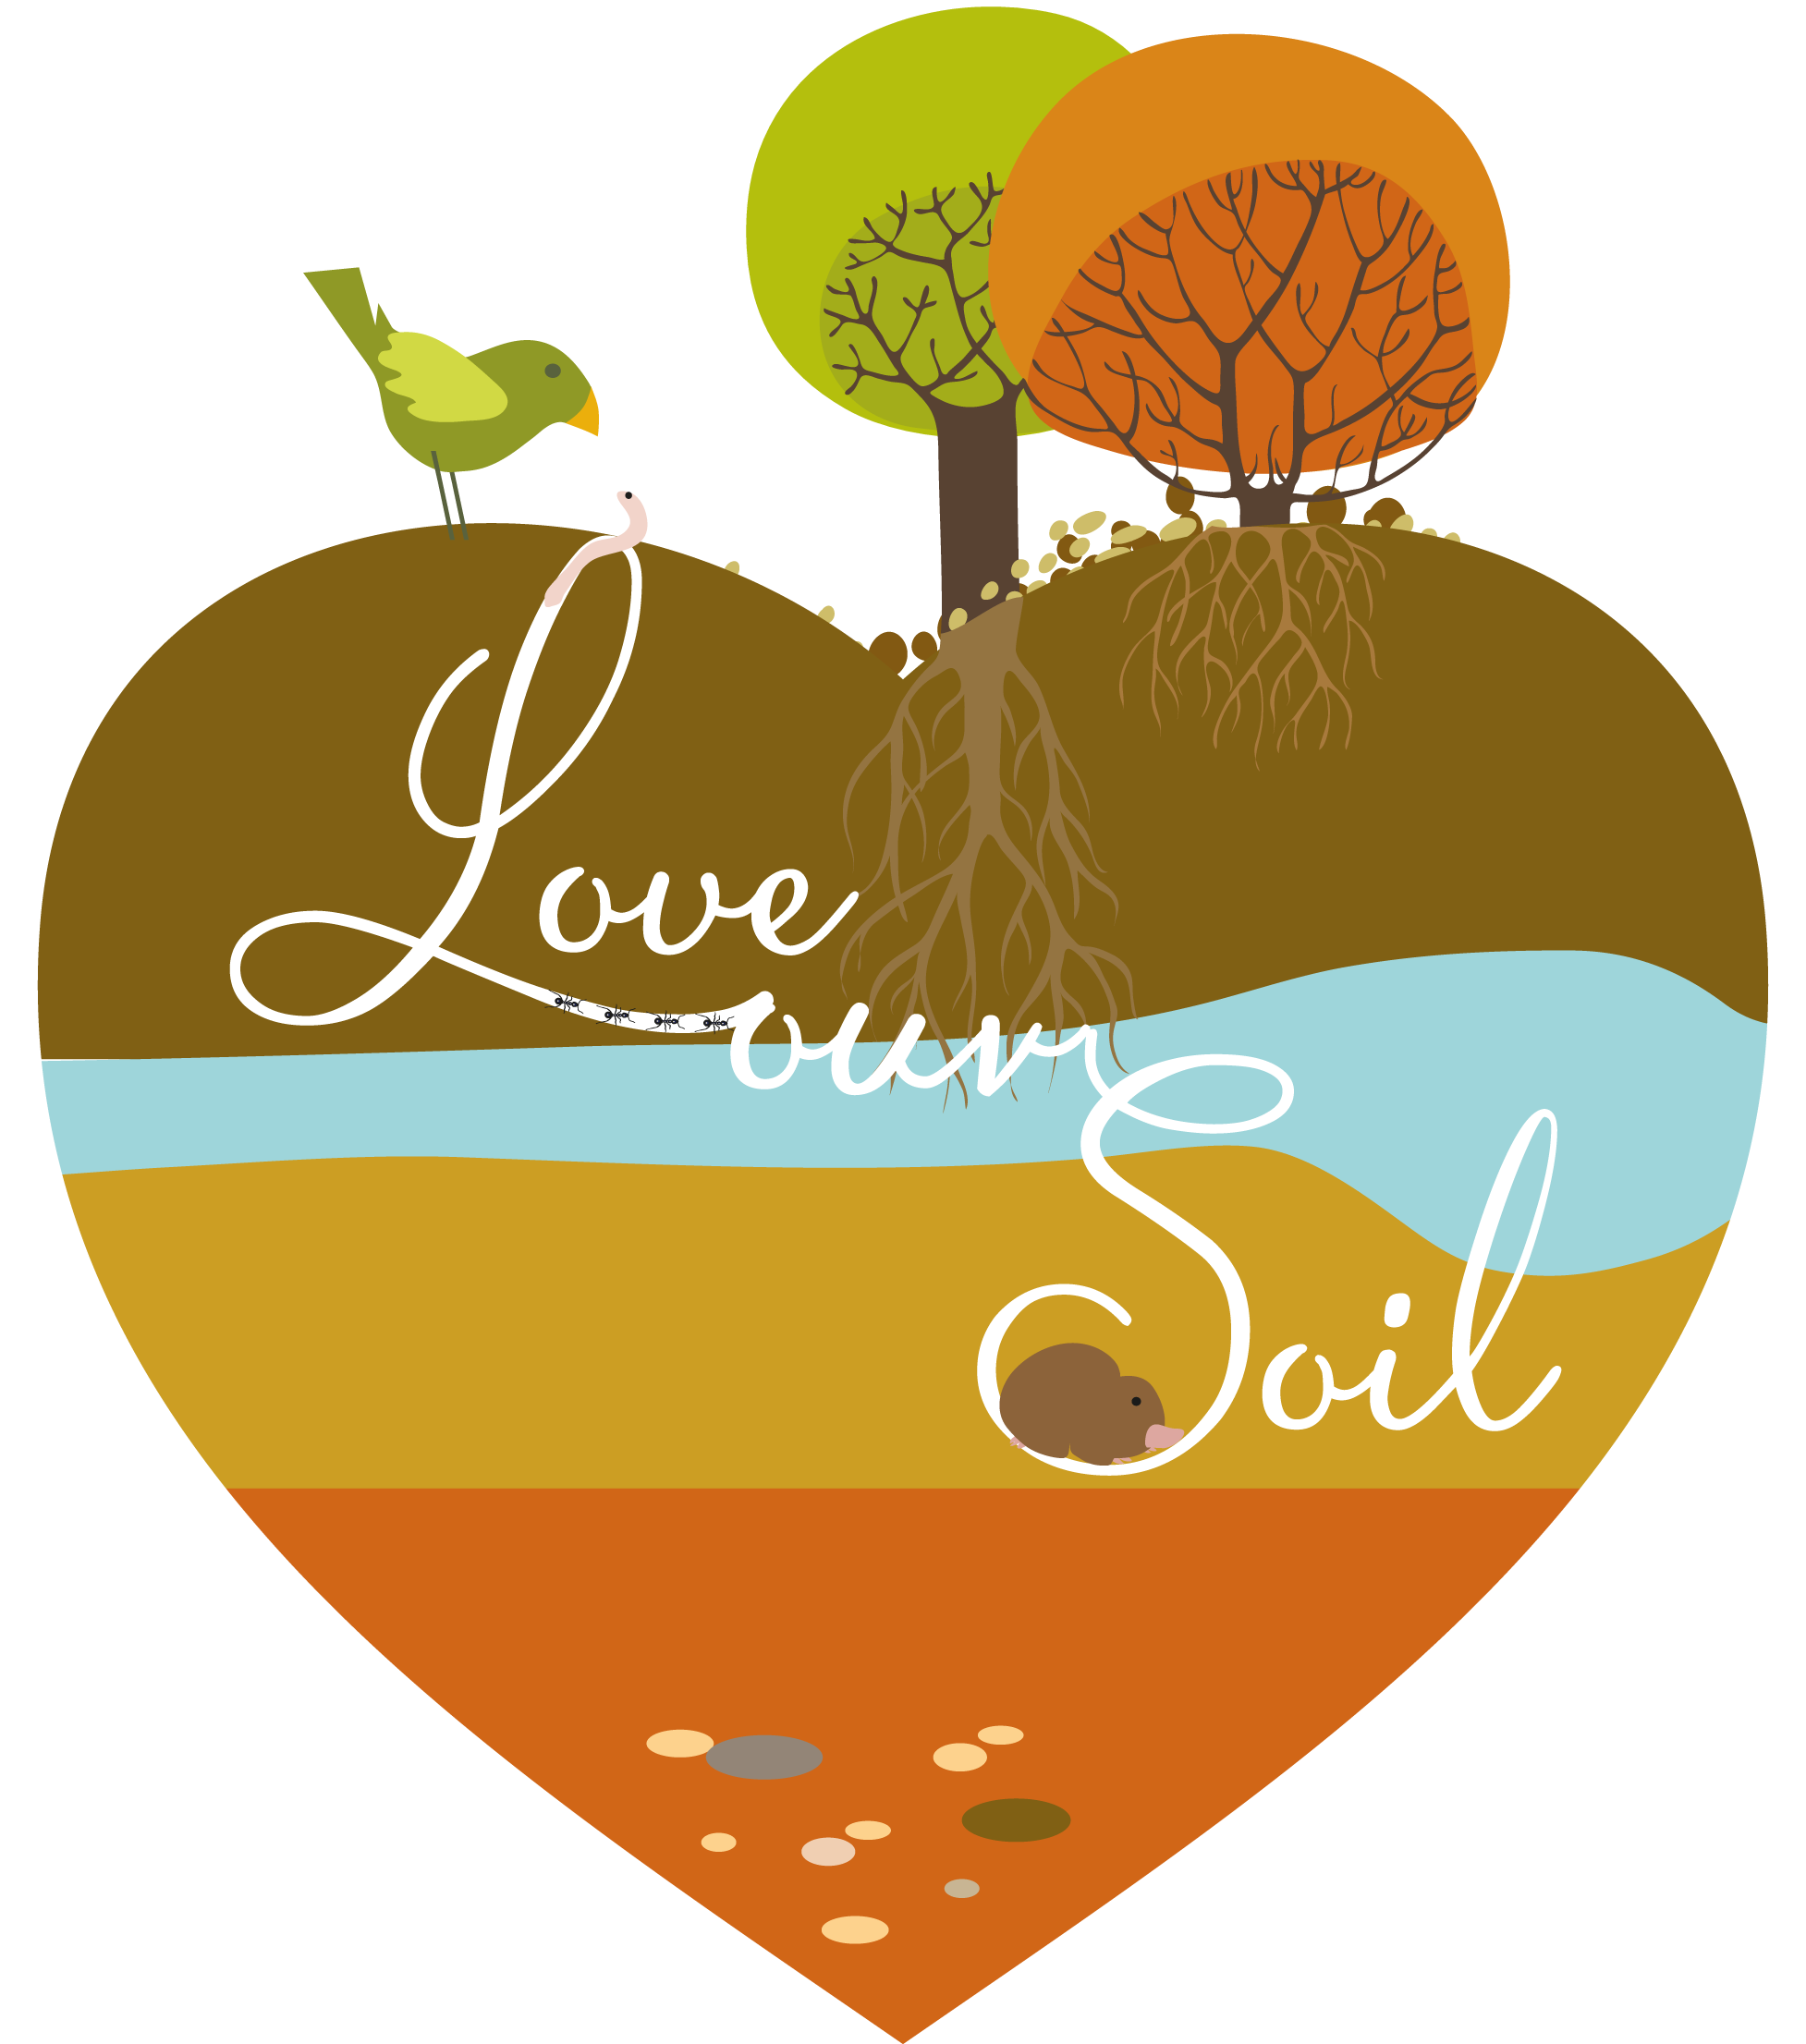 Evaporation clipart soil. Unccd love our pinterest